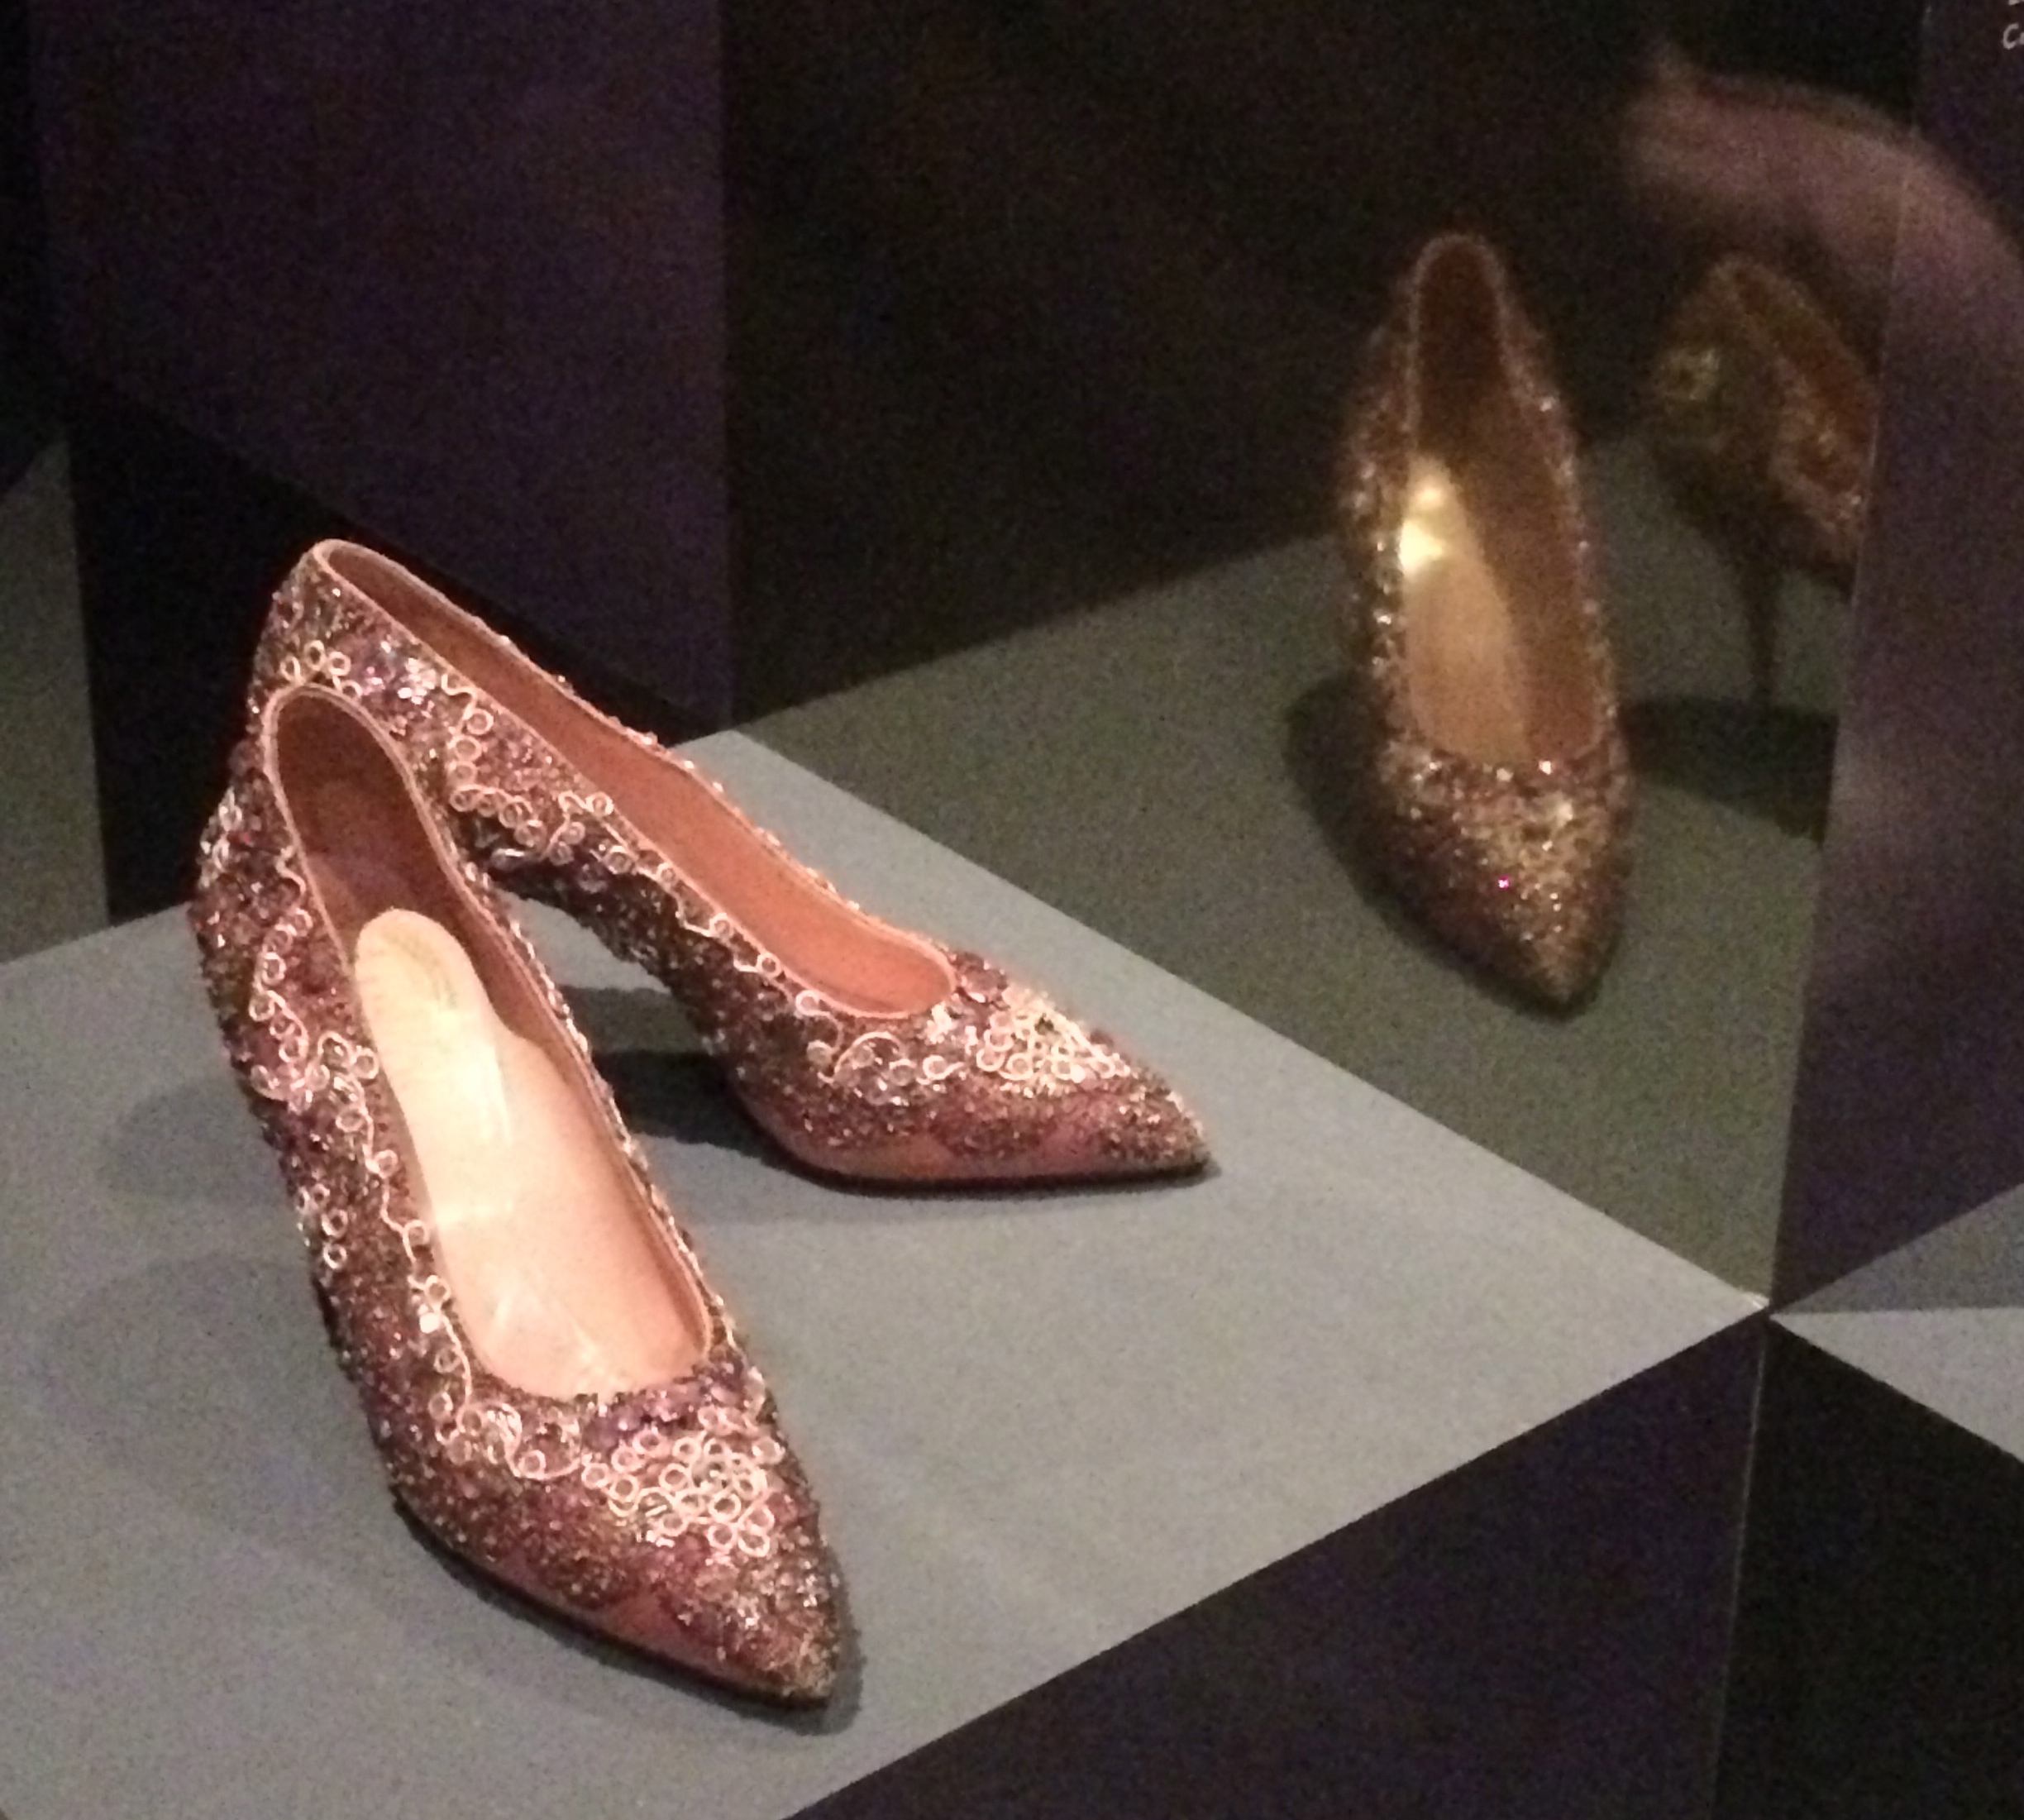 Christian Dior Roger Vivier shoes